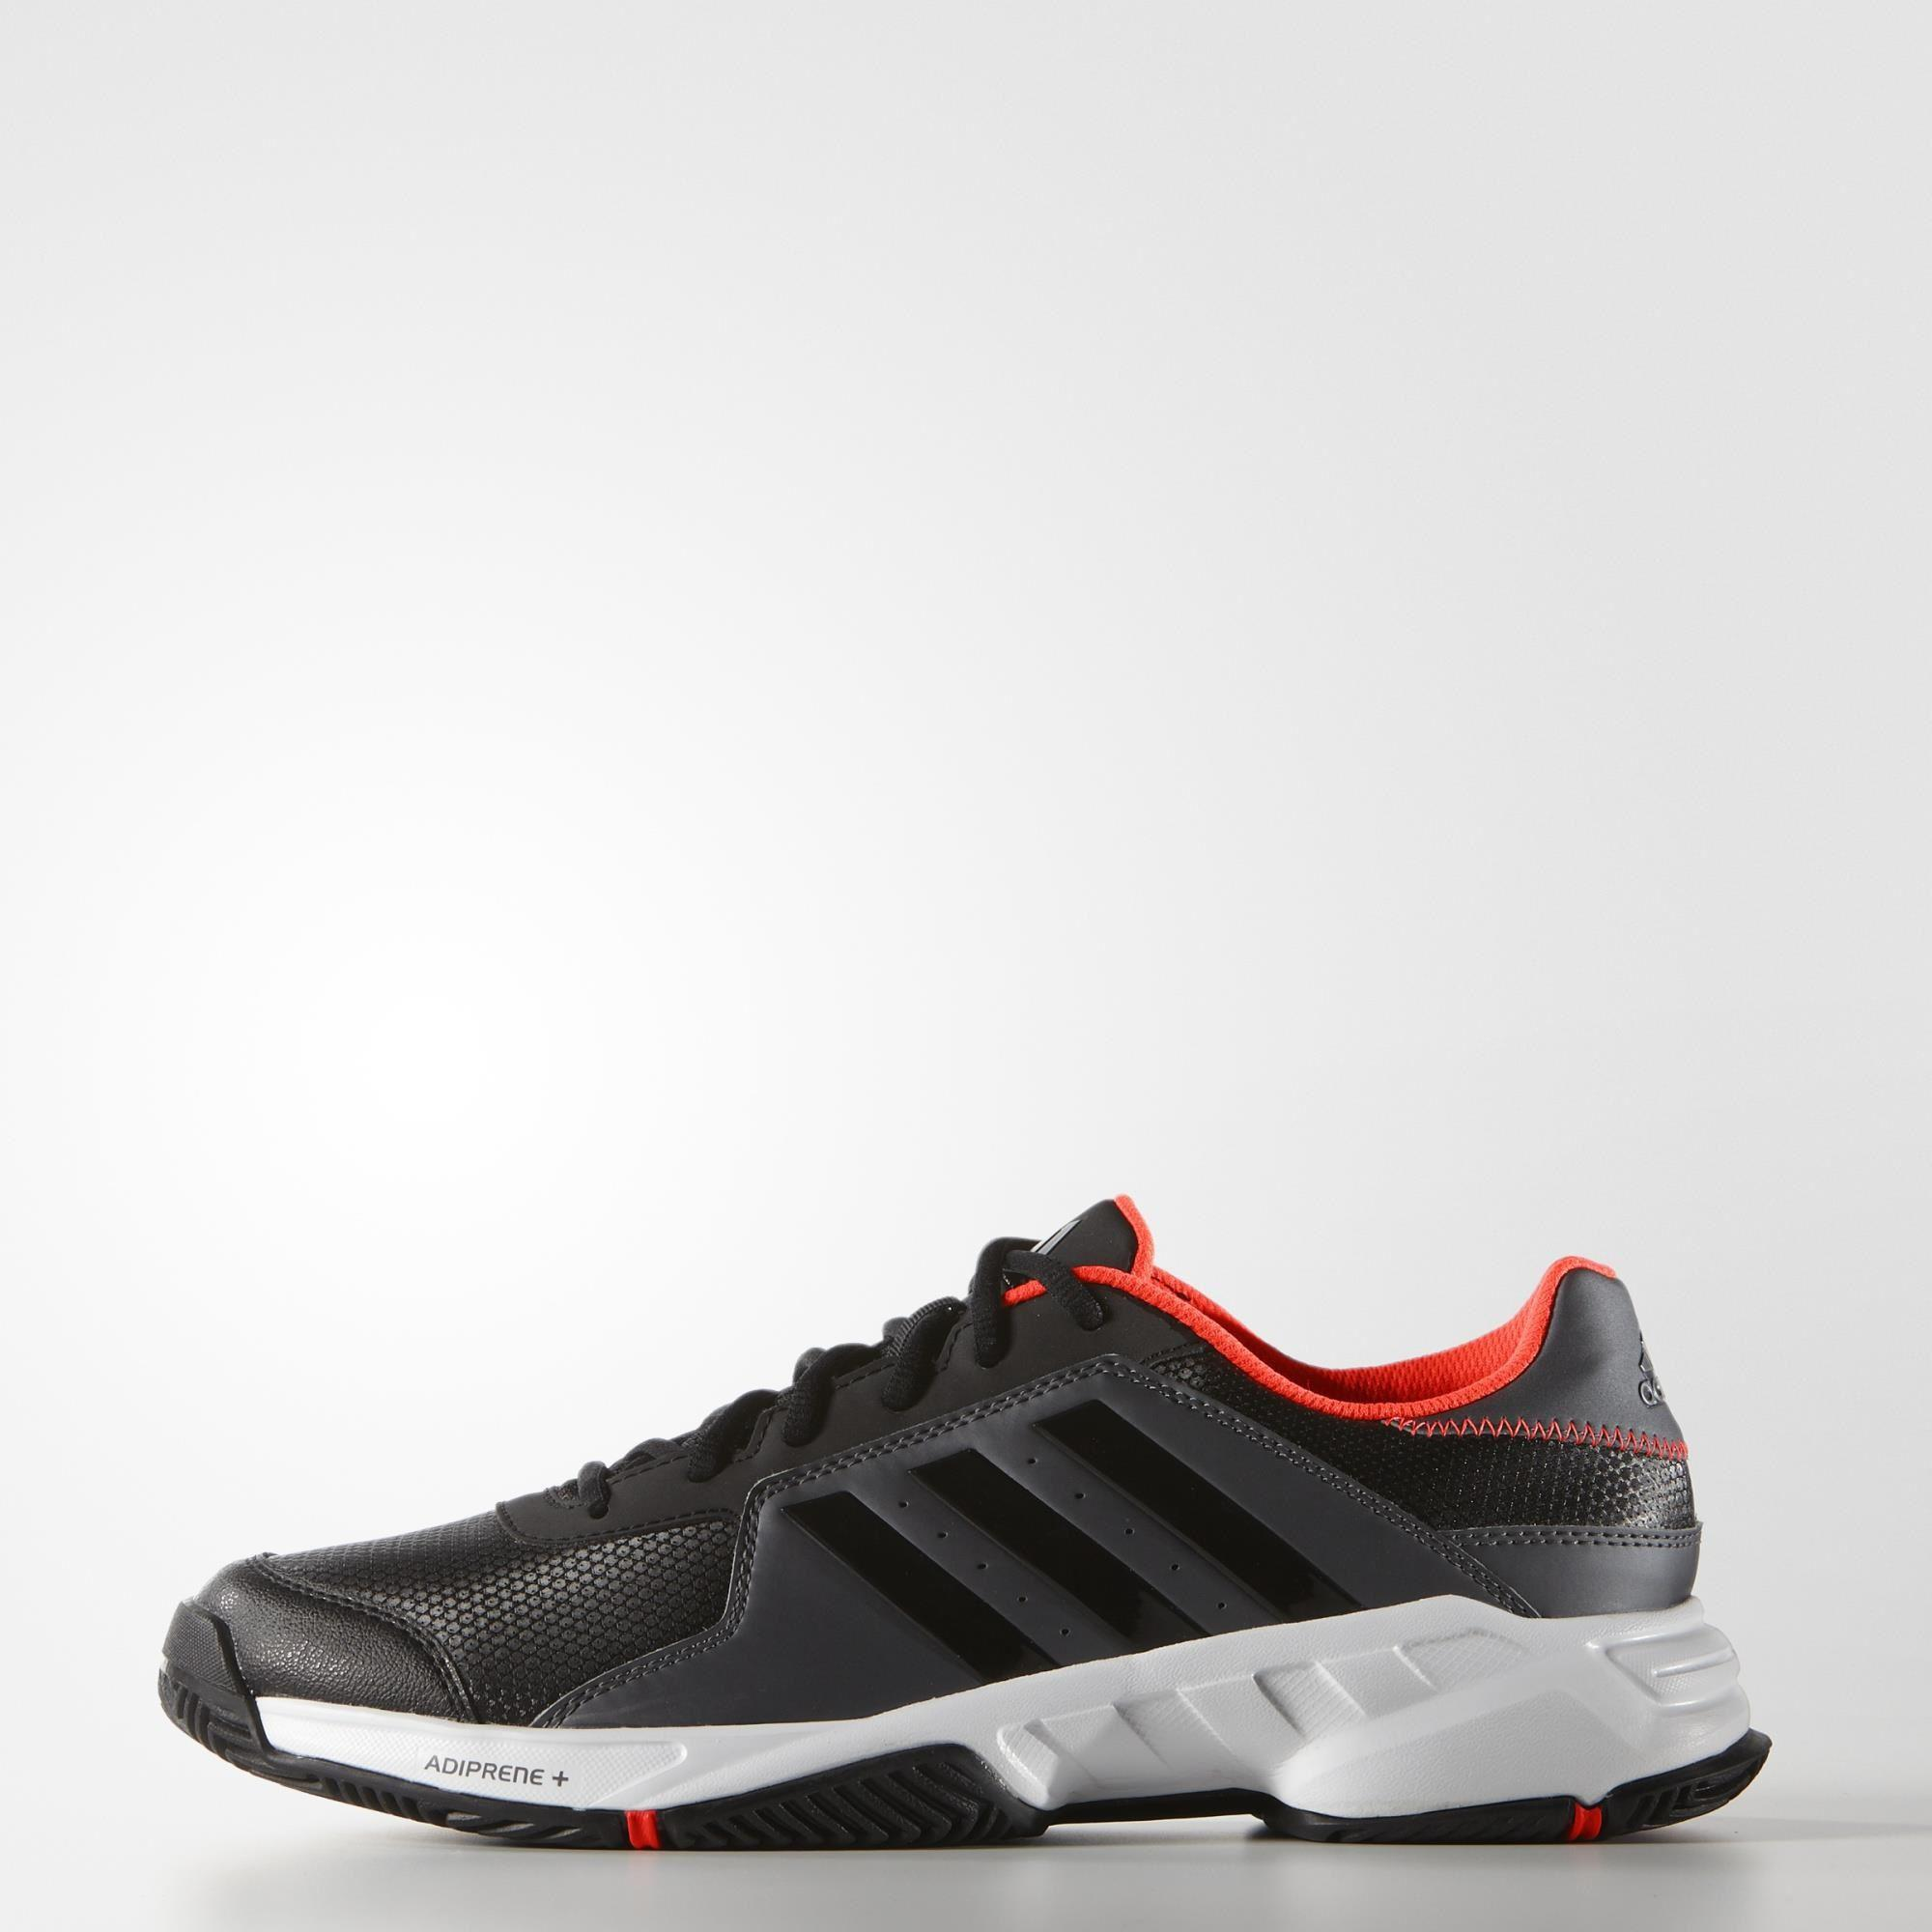 df2e92a77 Adidas Mens Barricade Court Tennis Shoes - Black Red - Tennisnuts.com